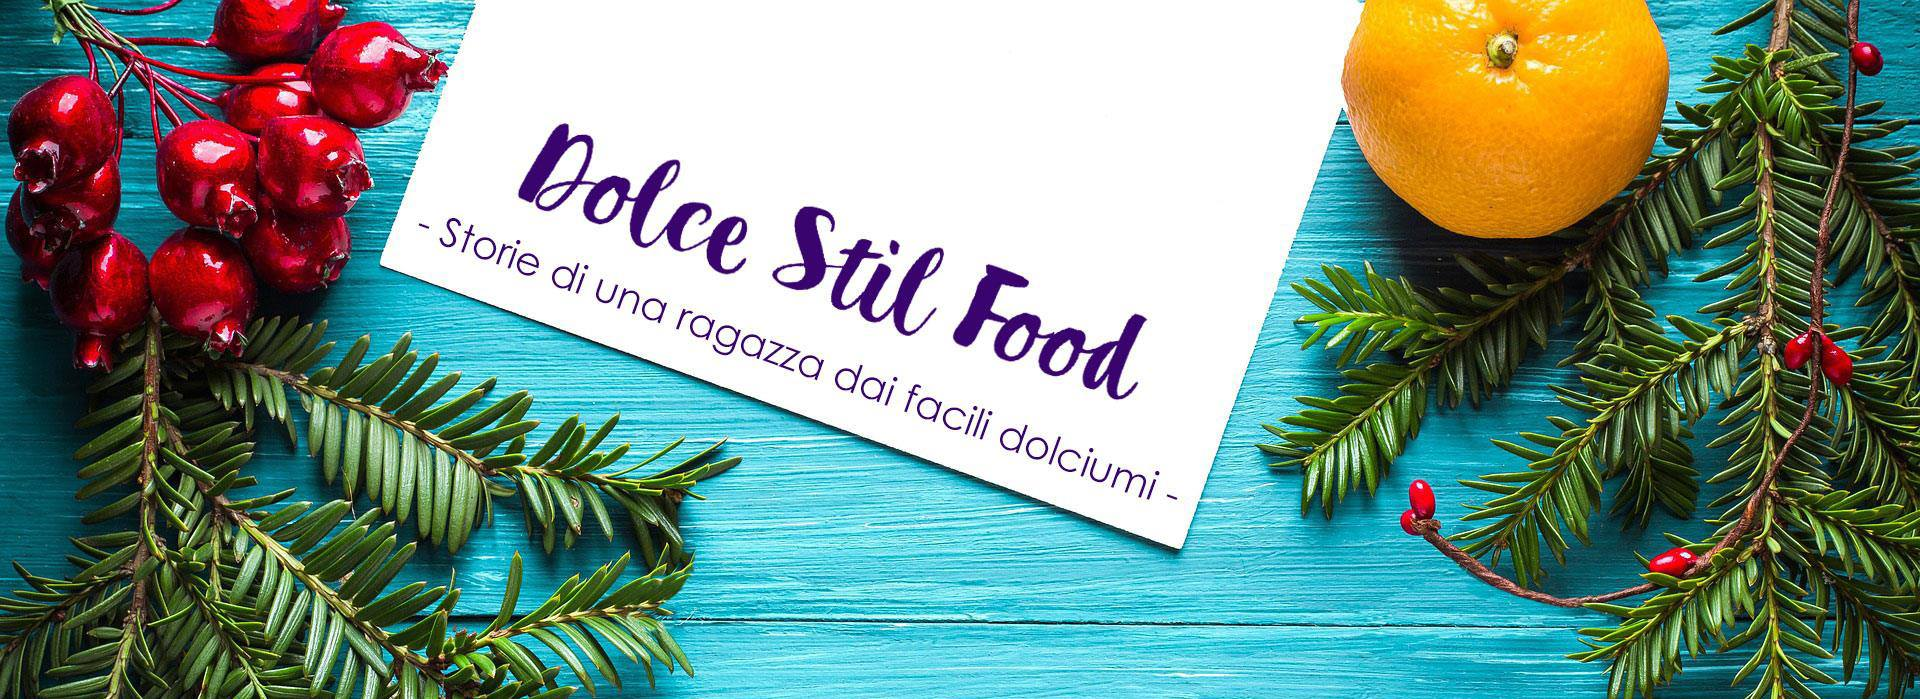 Dolce Stil Food